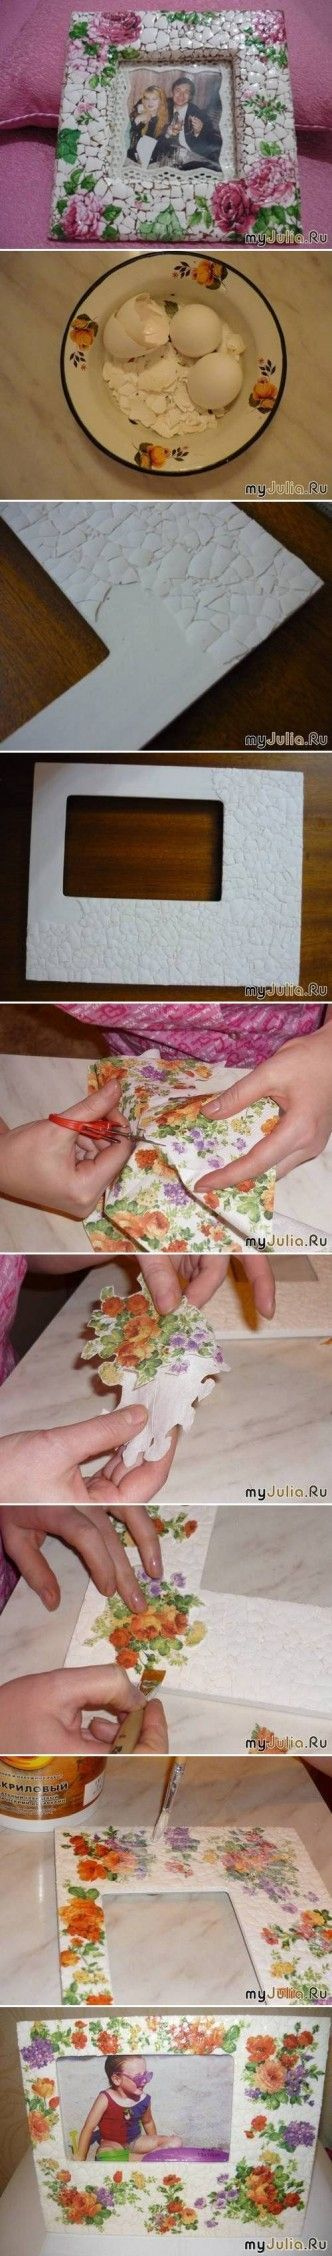 DIY Eggshell Mosaic Picture Frame DIY Projects